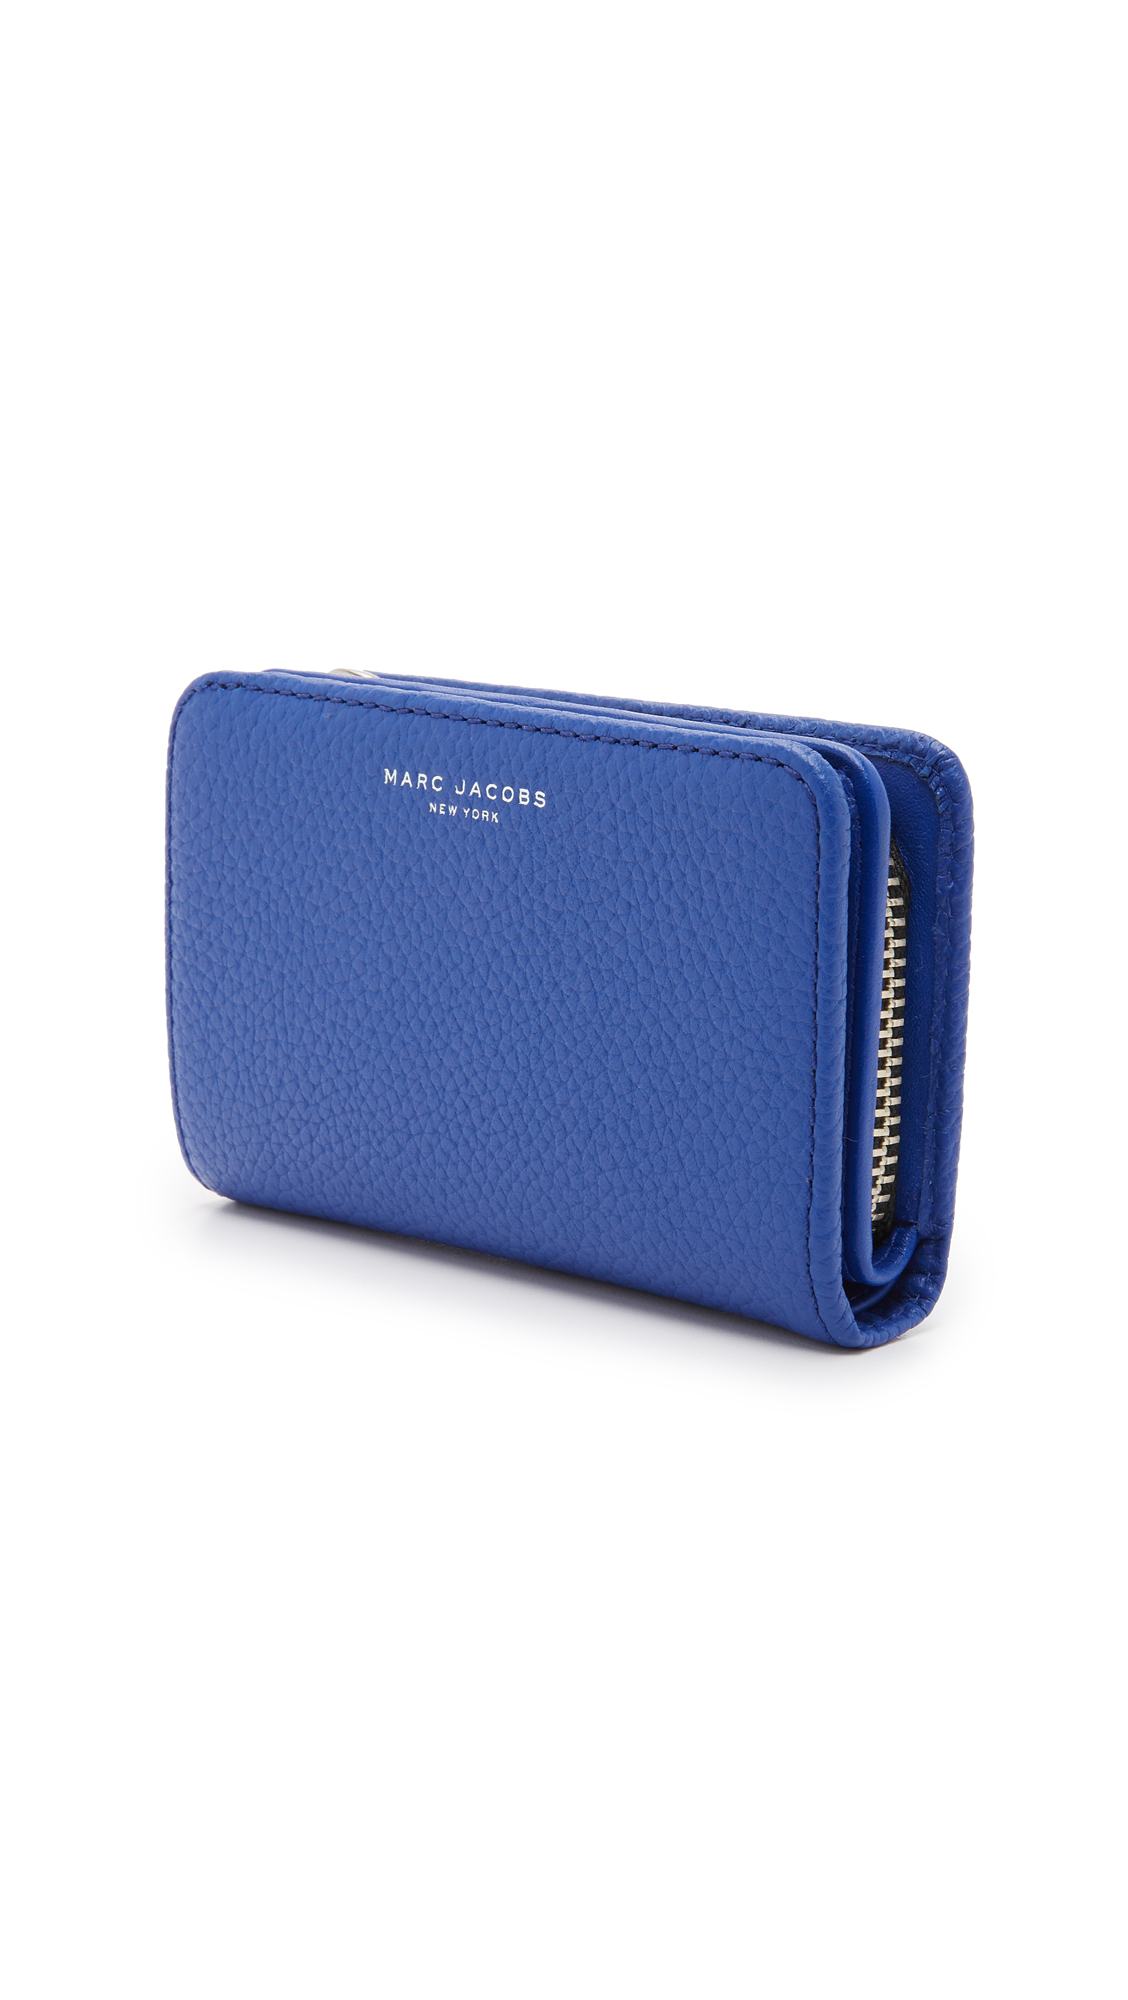 c9b45abf70c2 Marc Jacobs Gotham Compact Wallet in Blue - Lyst